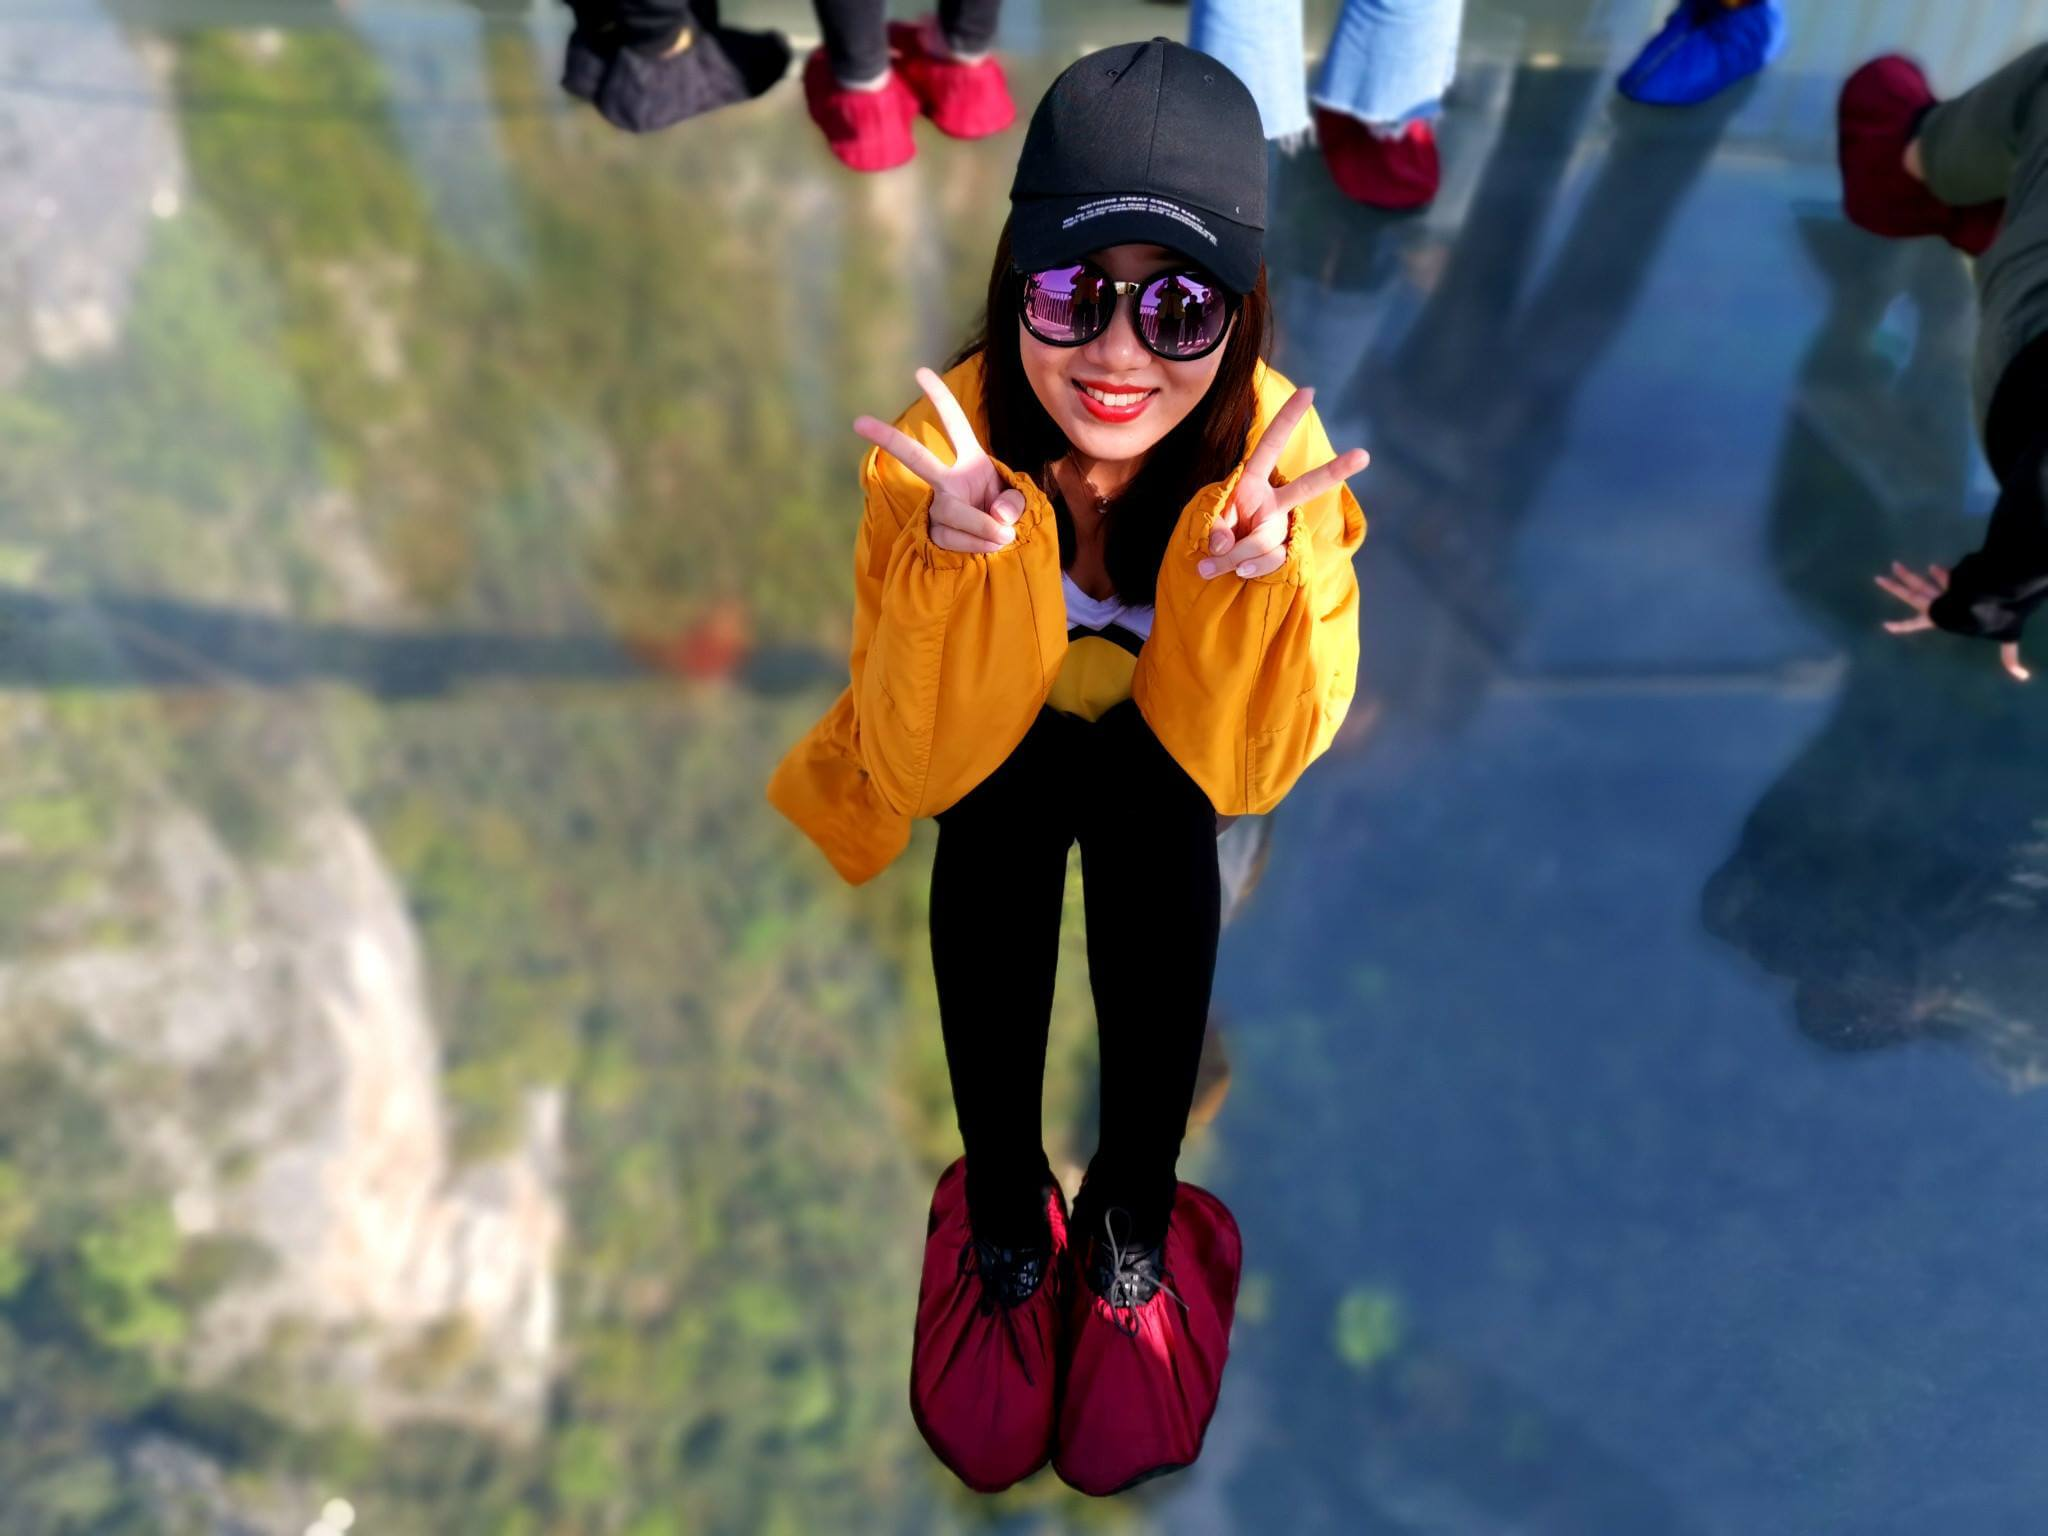 Zhangjiajie Glass Bridge Tours